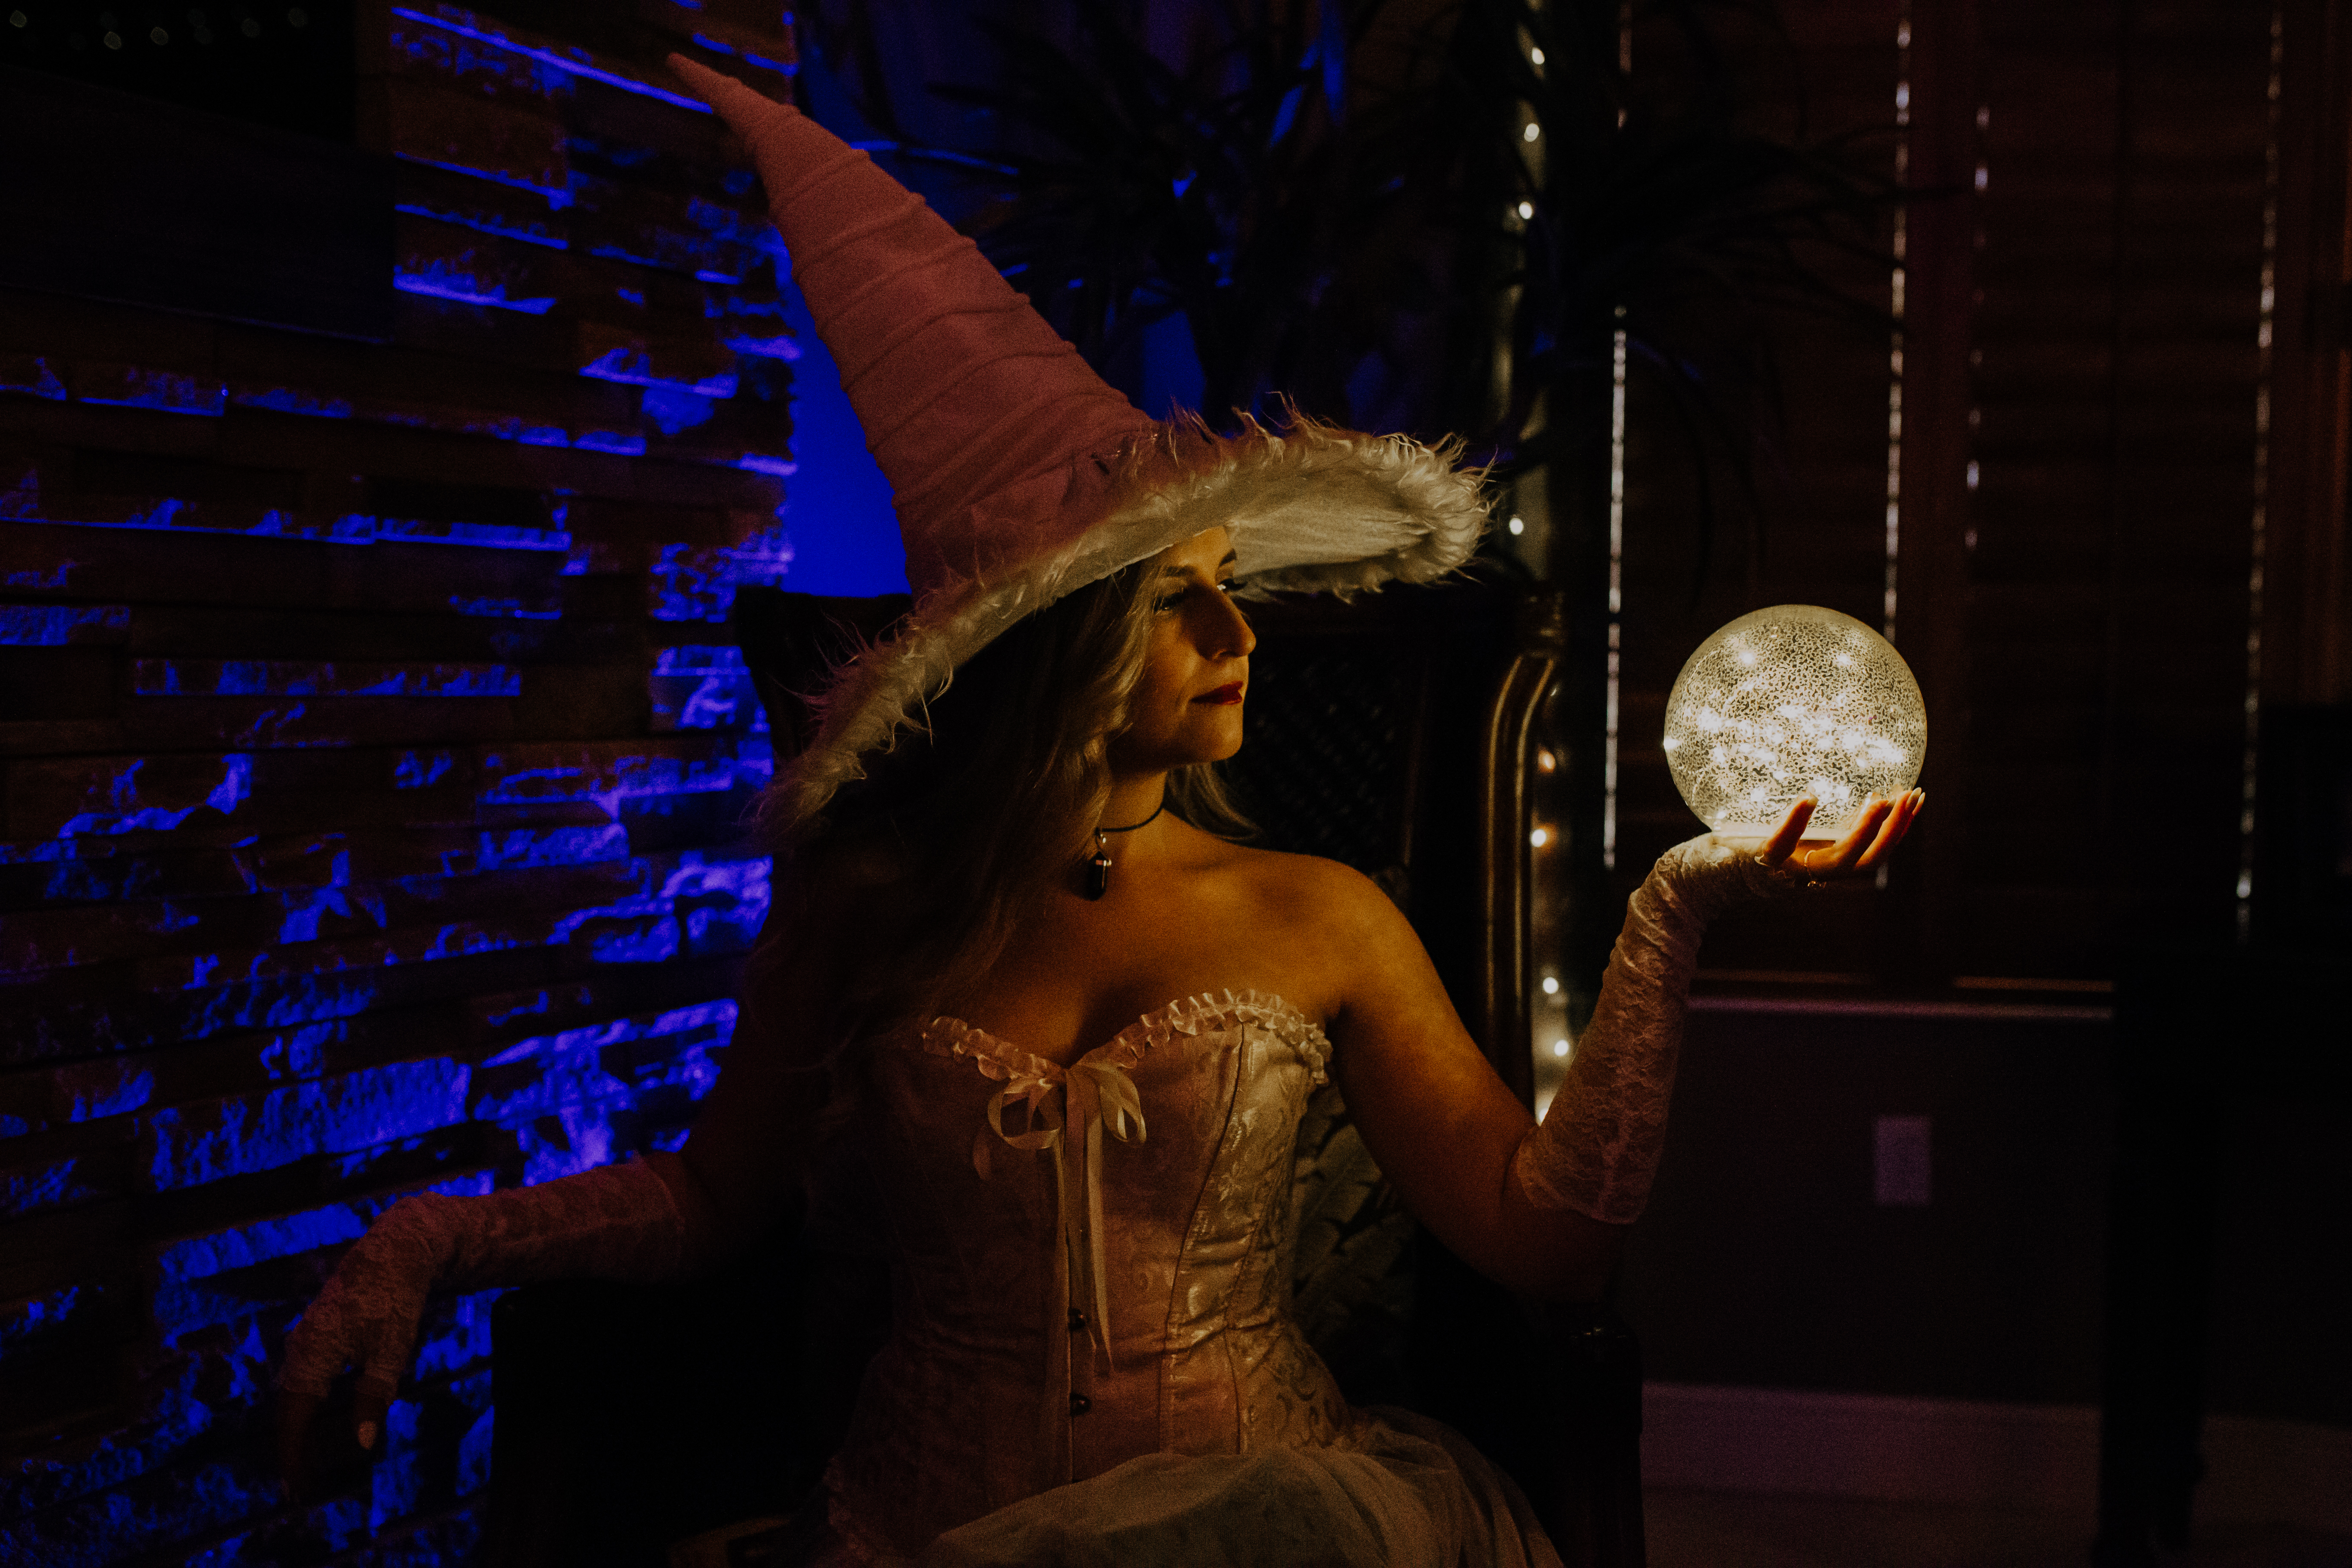 White witch costume poses in moody lighting with crystal ball orb